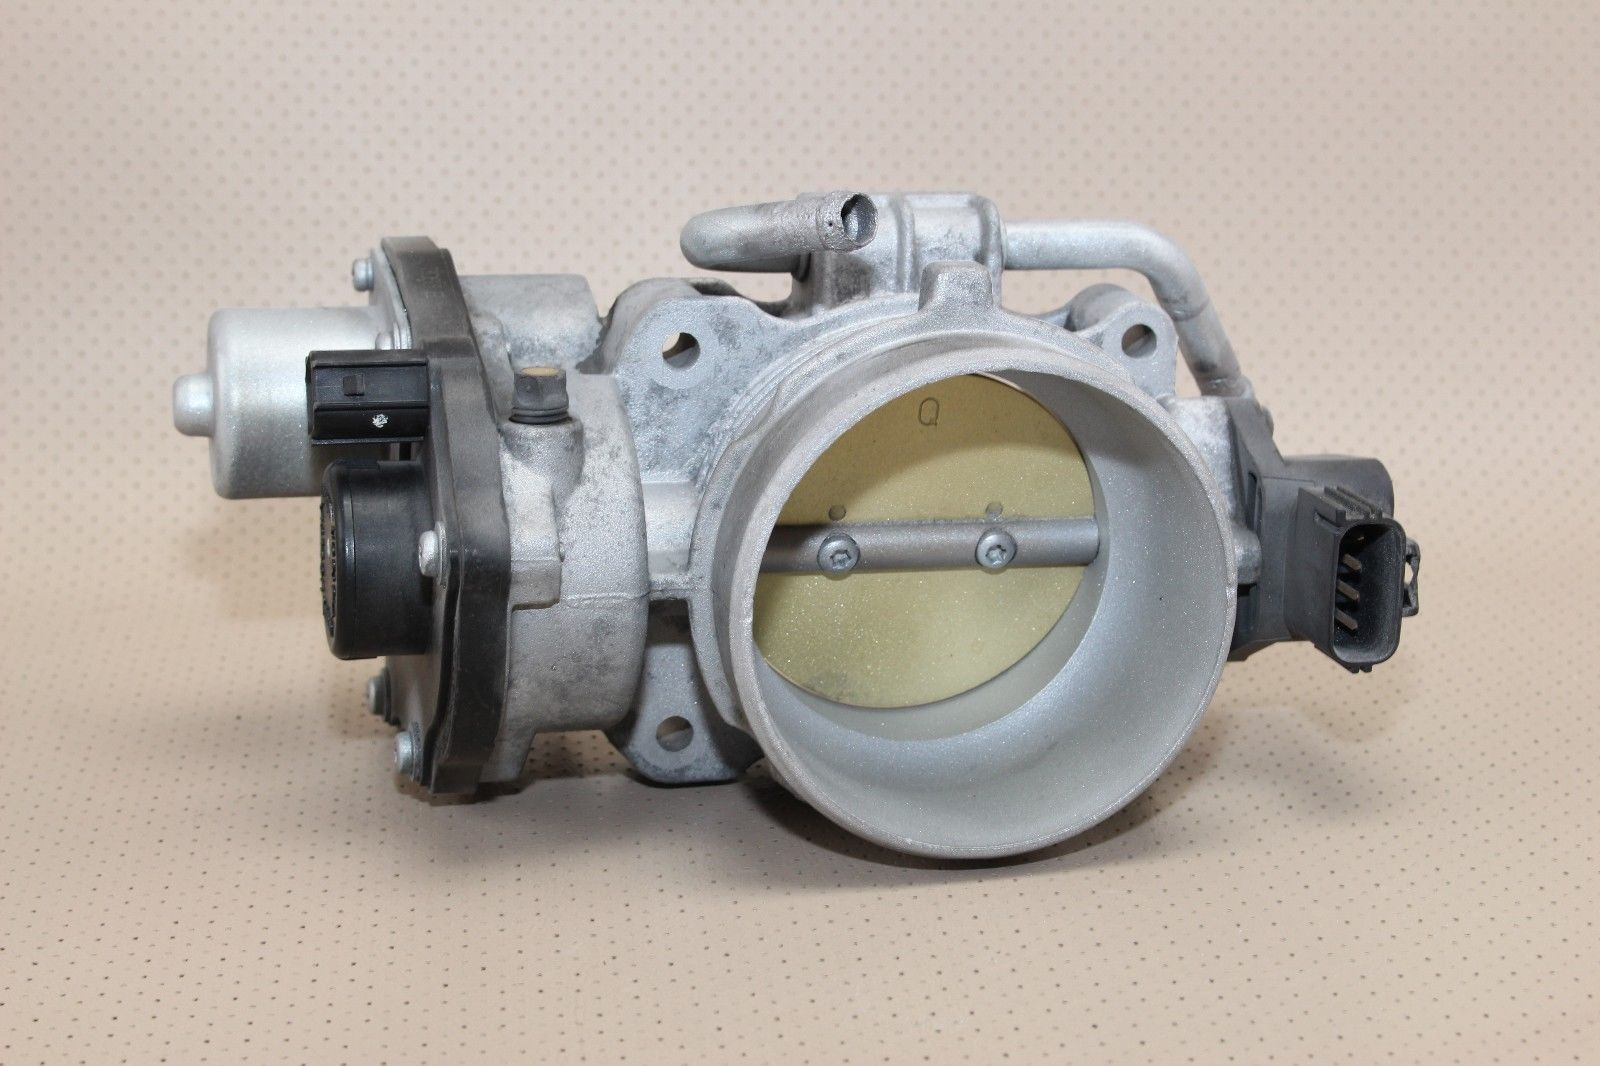 03 06 04 05 Lincoln Ls Ford Thunderbird 3 9l V8 Throttle Body Complete 3w4e Ac Car Truck Parts Air Intake Fuel Deli Lincoln Ls Fuel Delivery Cars Trucks